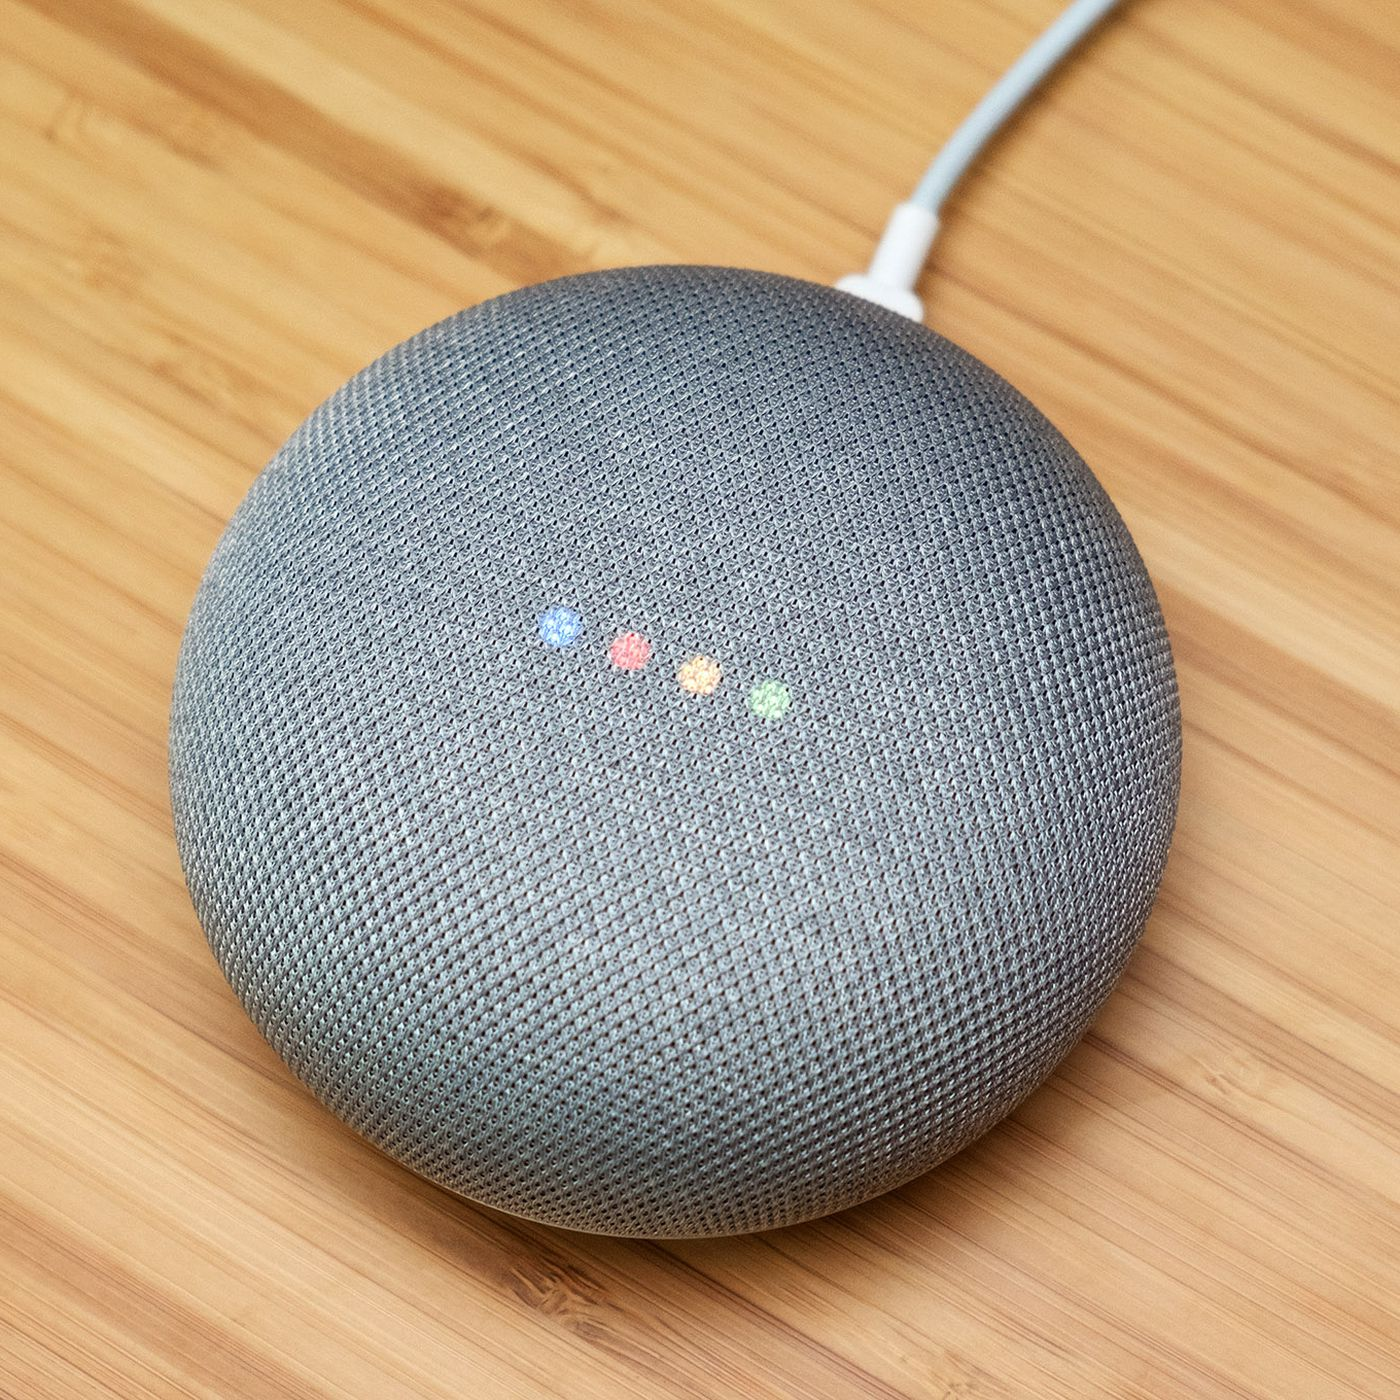 Explore What You Can Do With Google Nest Devices